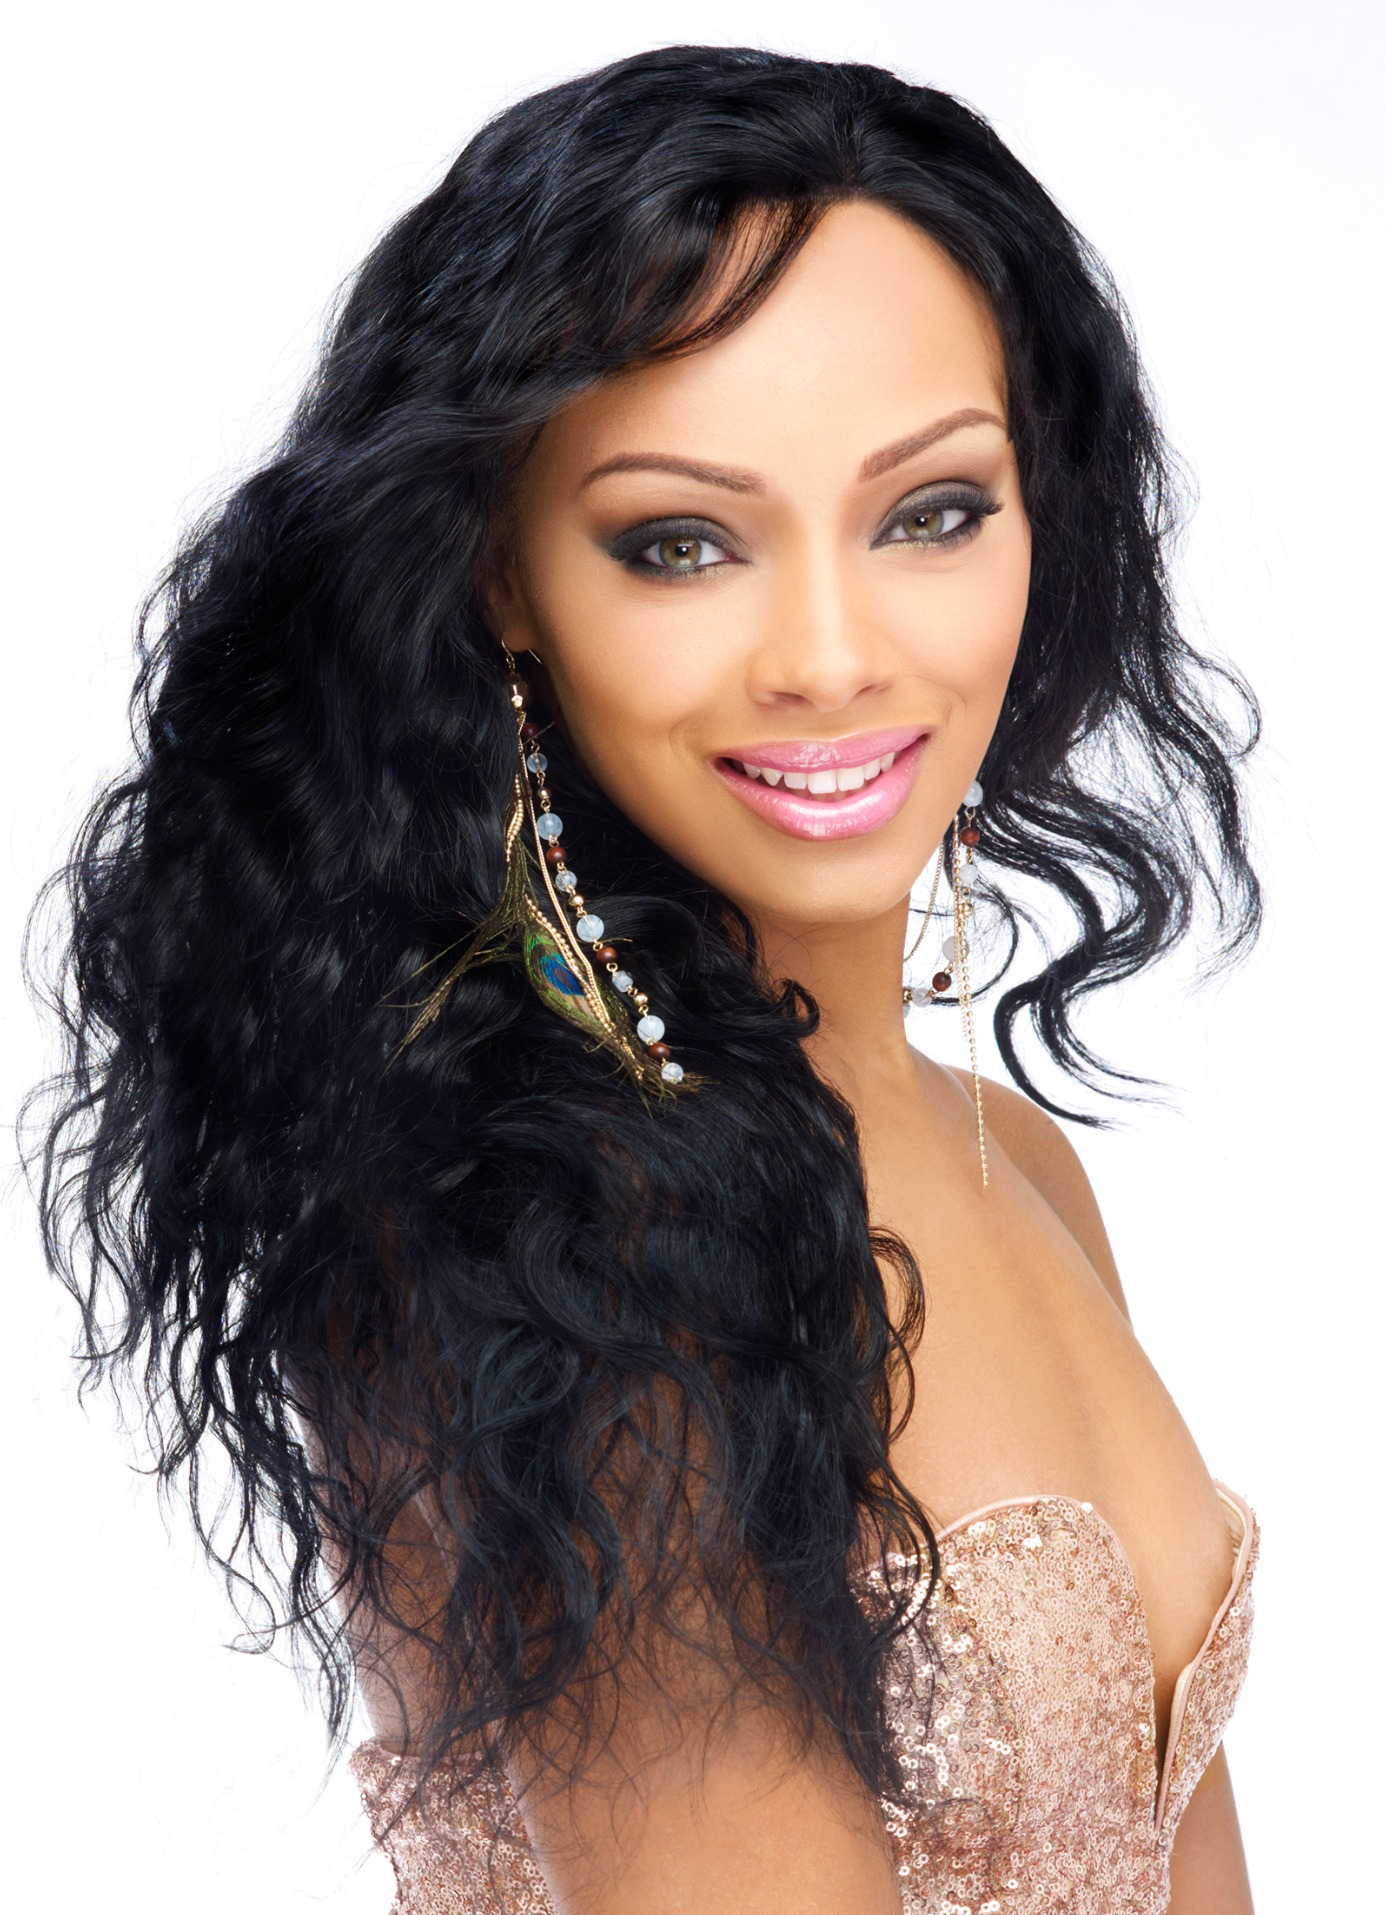 Lace wigs sassy secret sassy secret is always on the cutting edge of new hair styles and trends so we are always intoducing new lace wigs and hair hair extension pmusecretfo Gallery